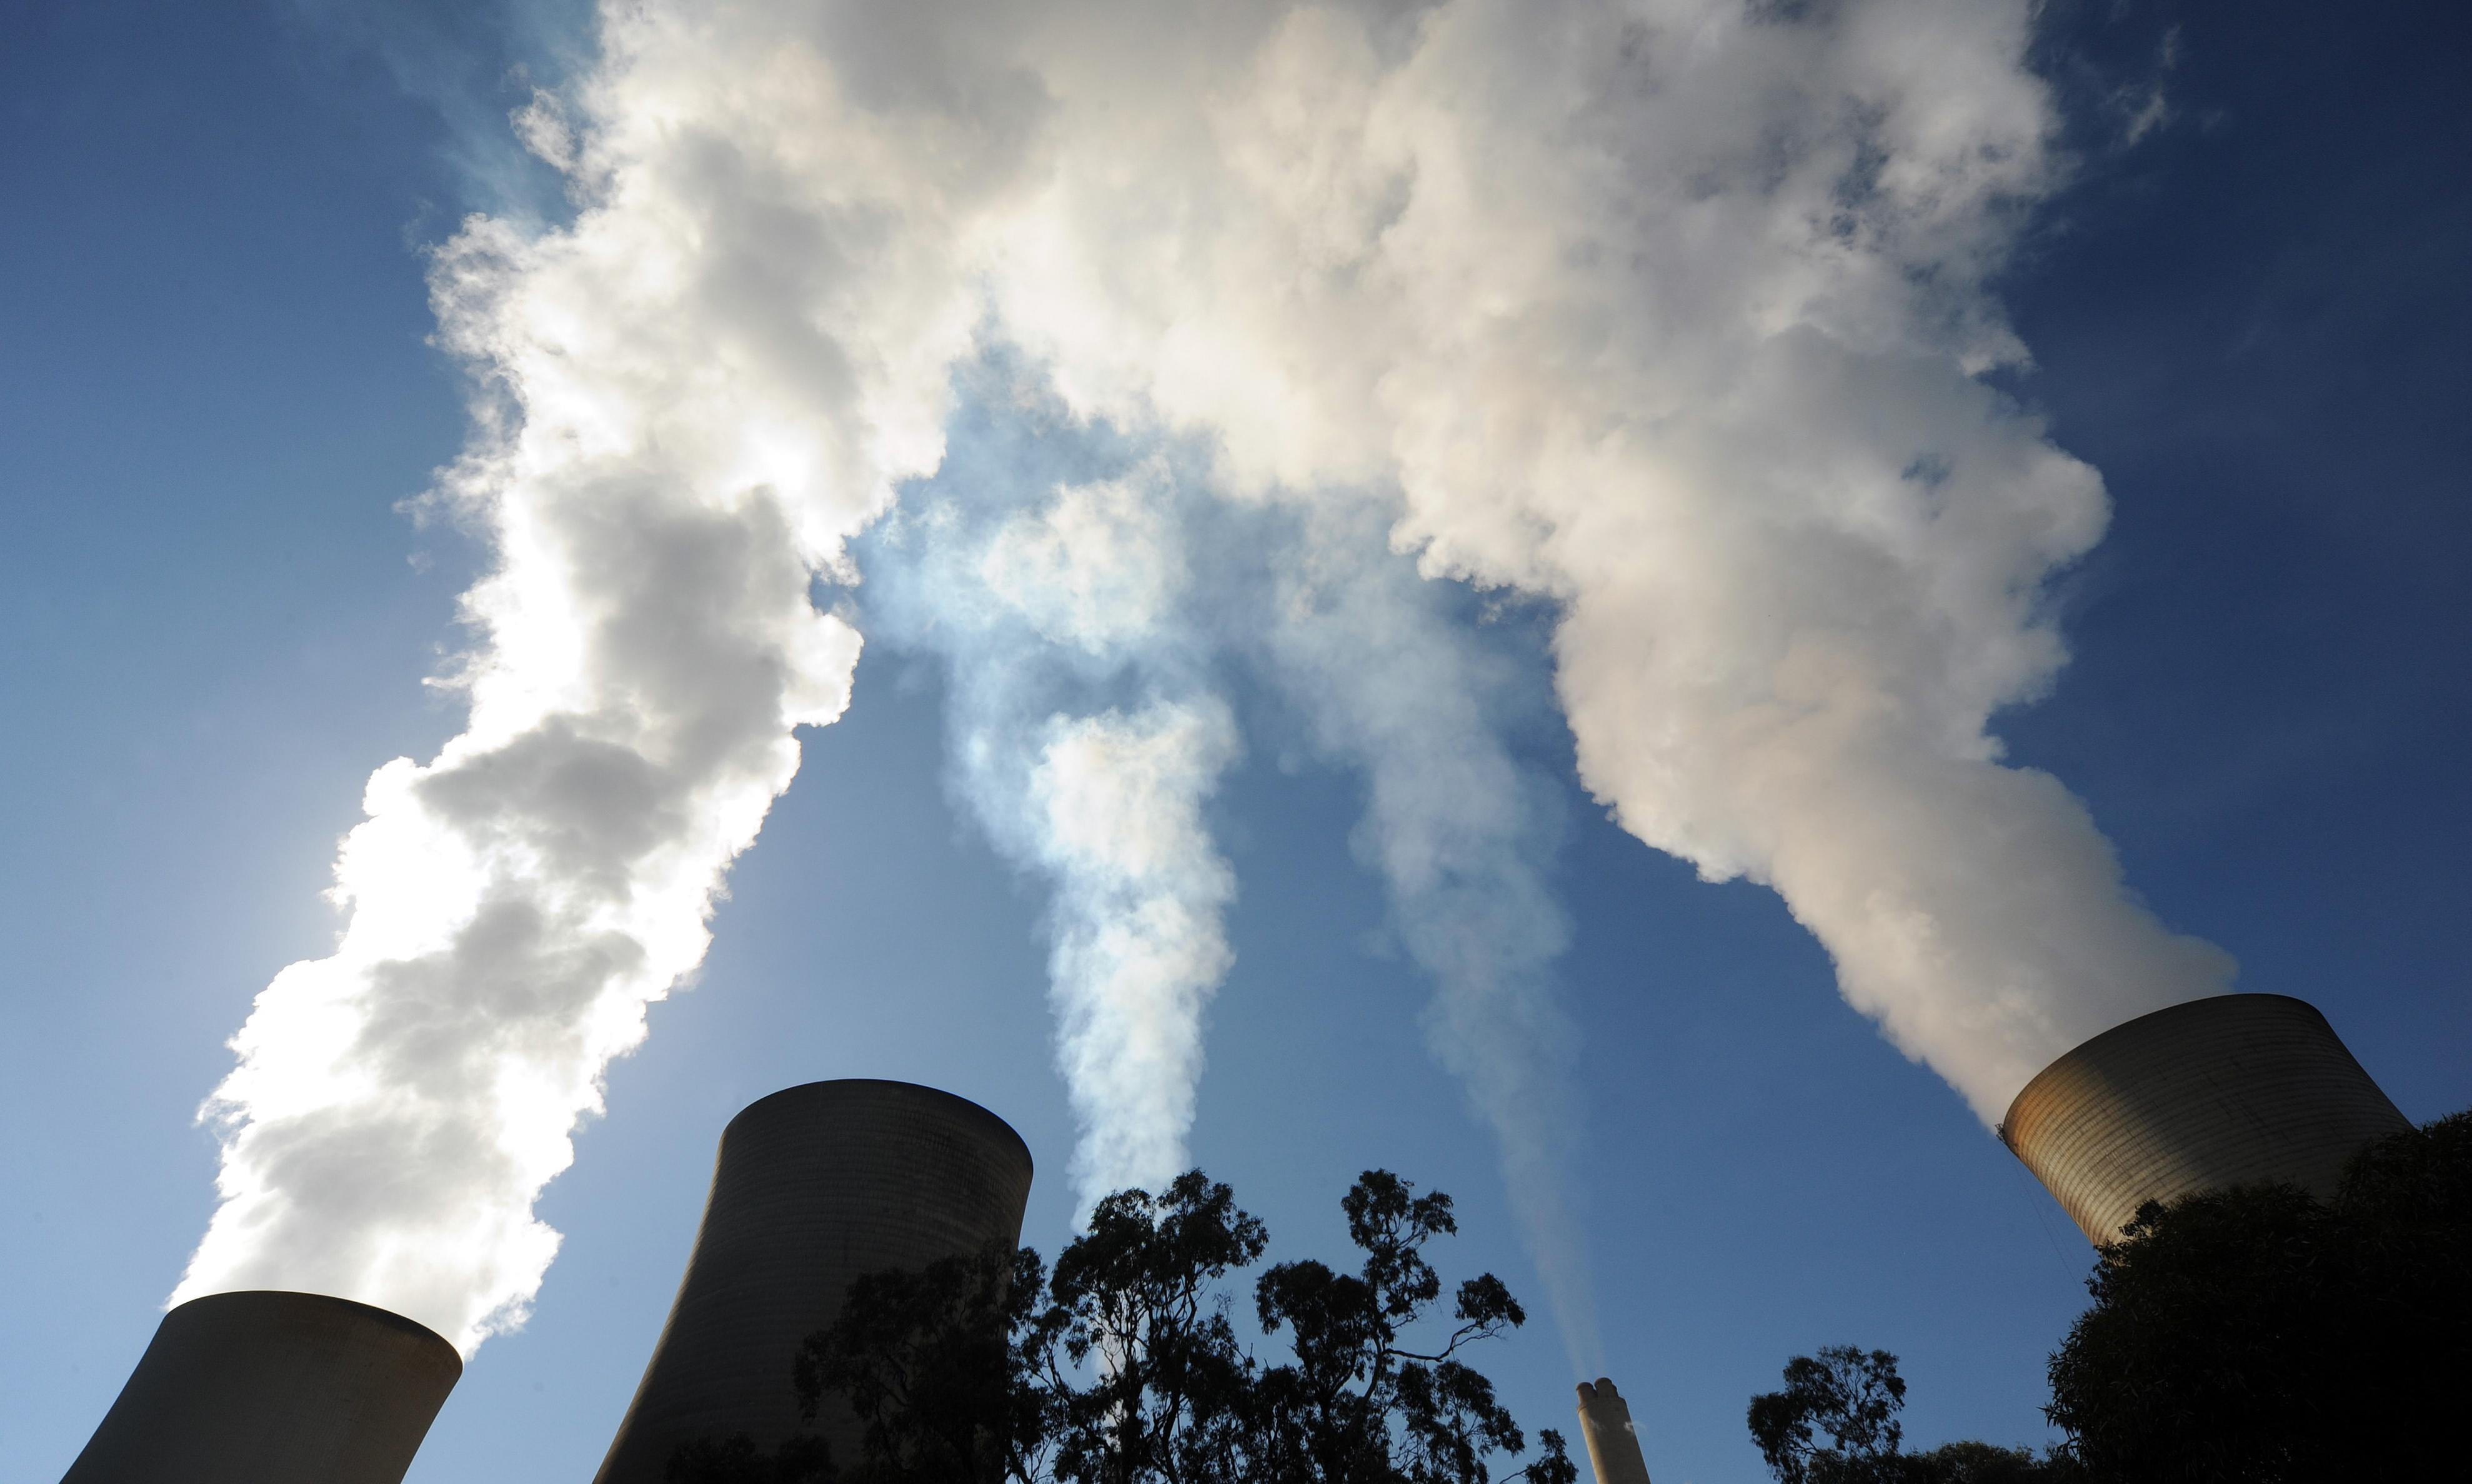 Underwriting coal power exposes taxpayers to billions, industry group says